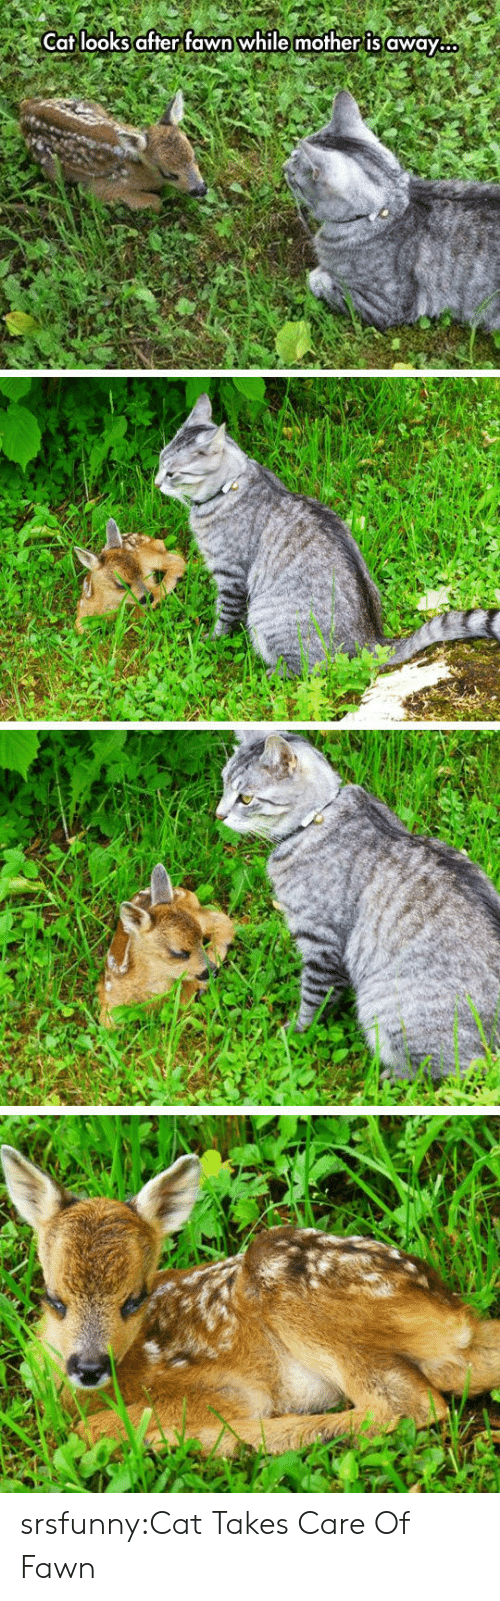 Tumblr, Blog, and Net: Cat looks after fawn while mother is away. srsfunny:Cat Takes Care Of Fawn